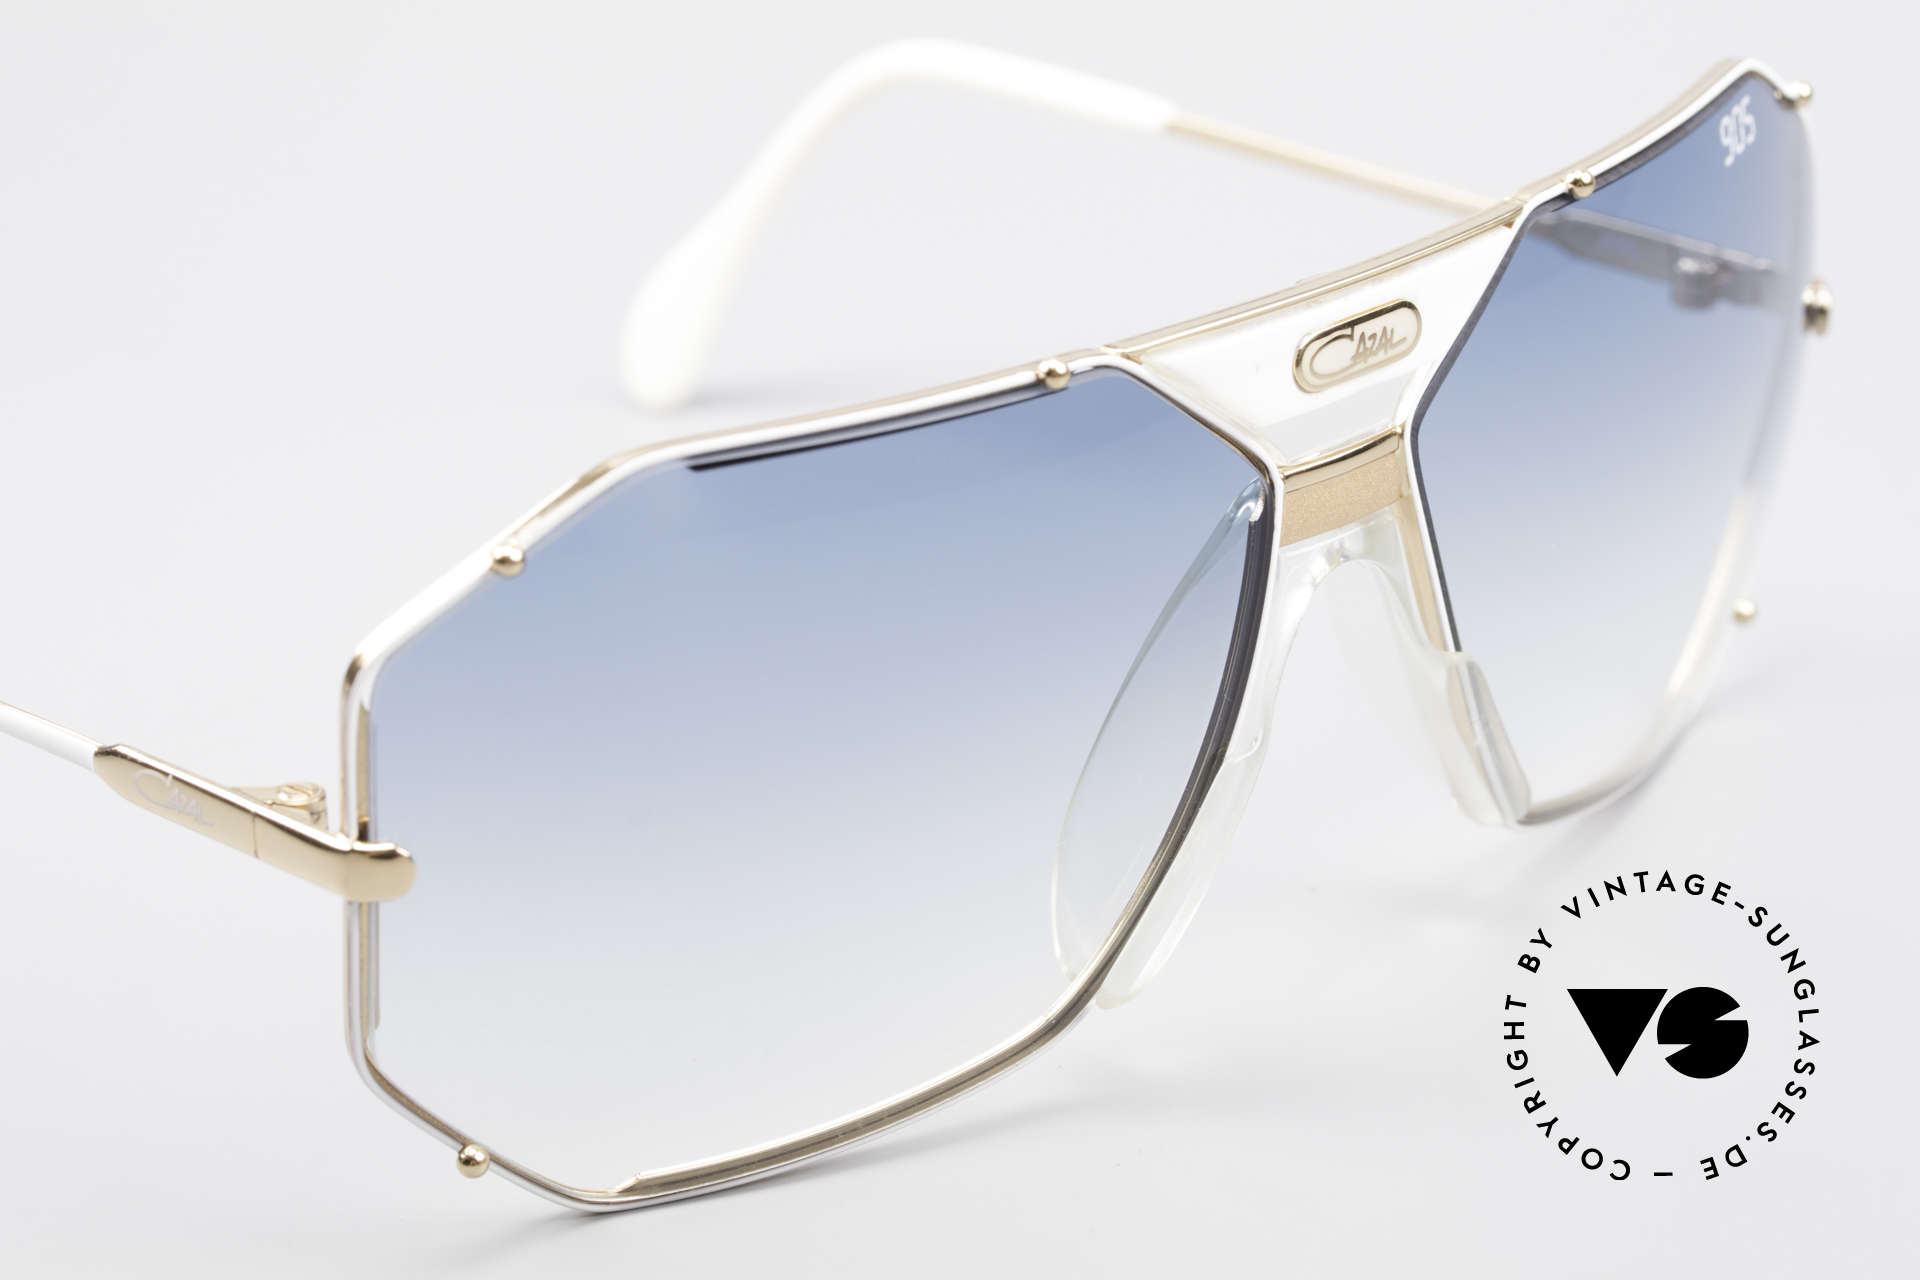 Cazal 905 Gwen Stefani Vintage Shades, new old stock (like all our vintage Cazal shades), Made for Men and Women